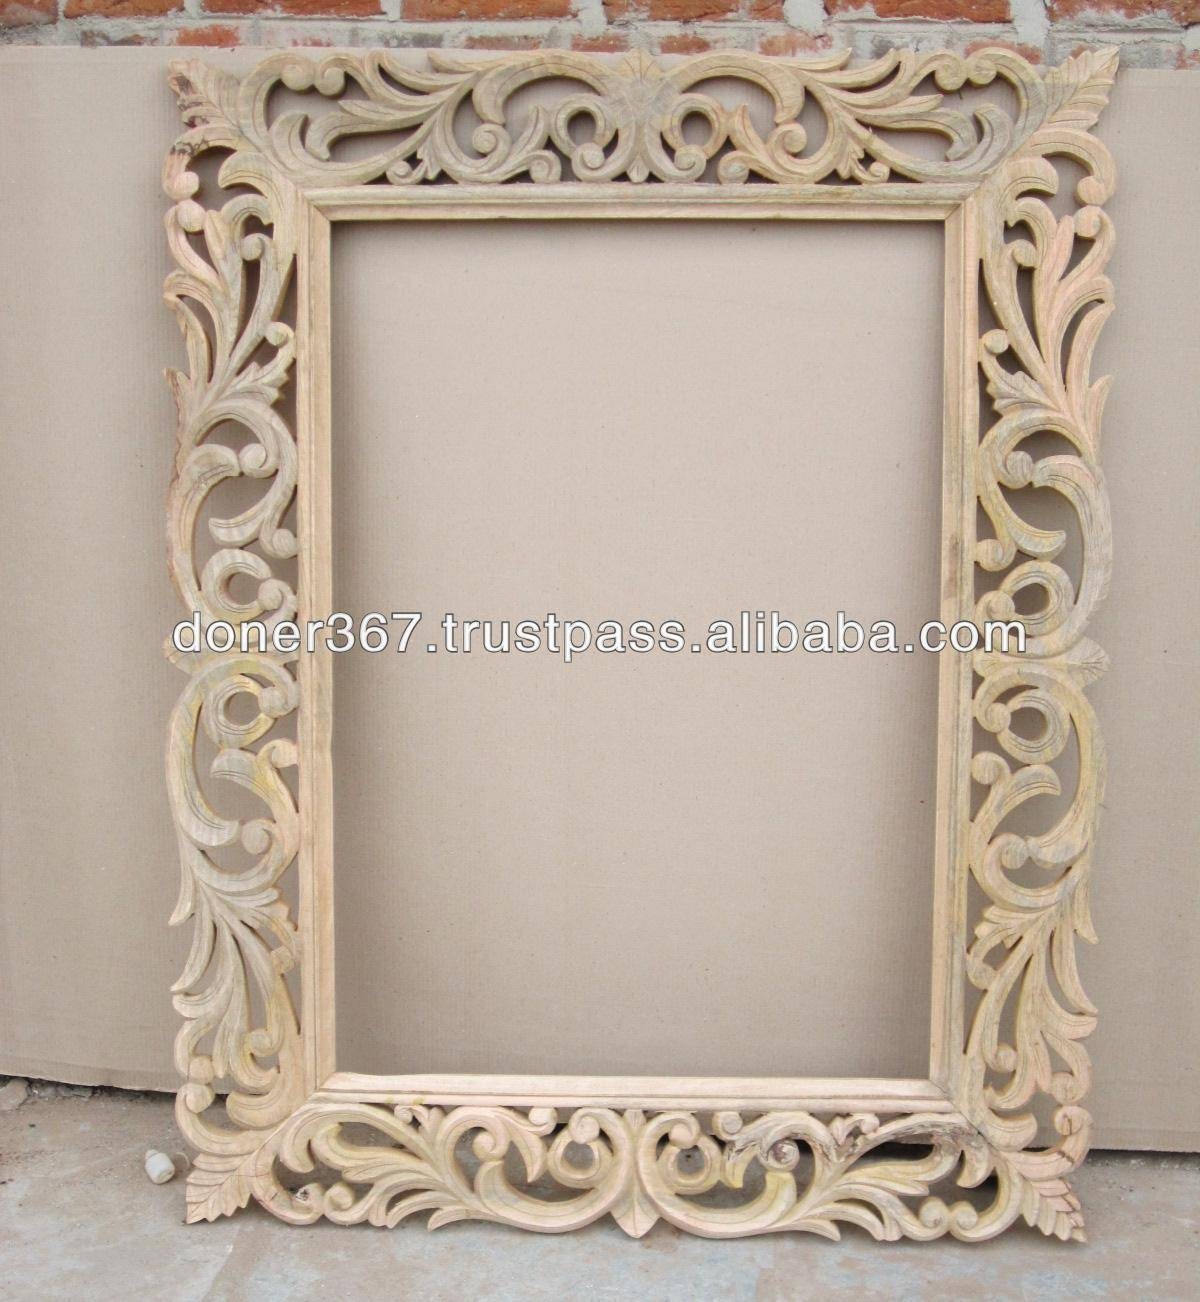 Wood Mirror Frame, Wood Mirror Frame Suppliers And Manufacturers within Glitter Frame Mirrors (Image 25 of 25)